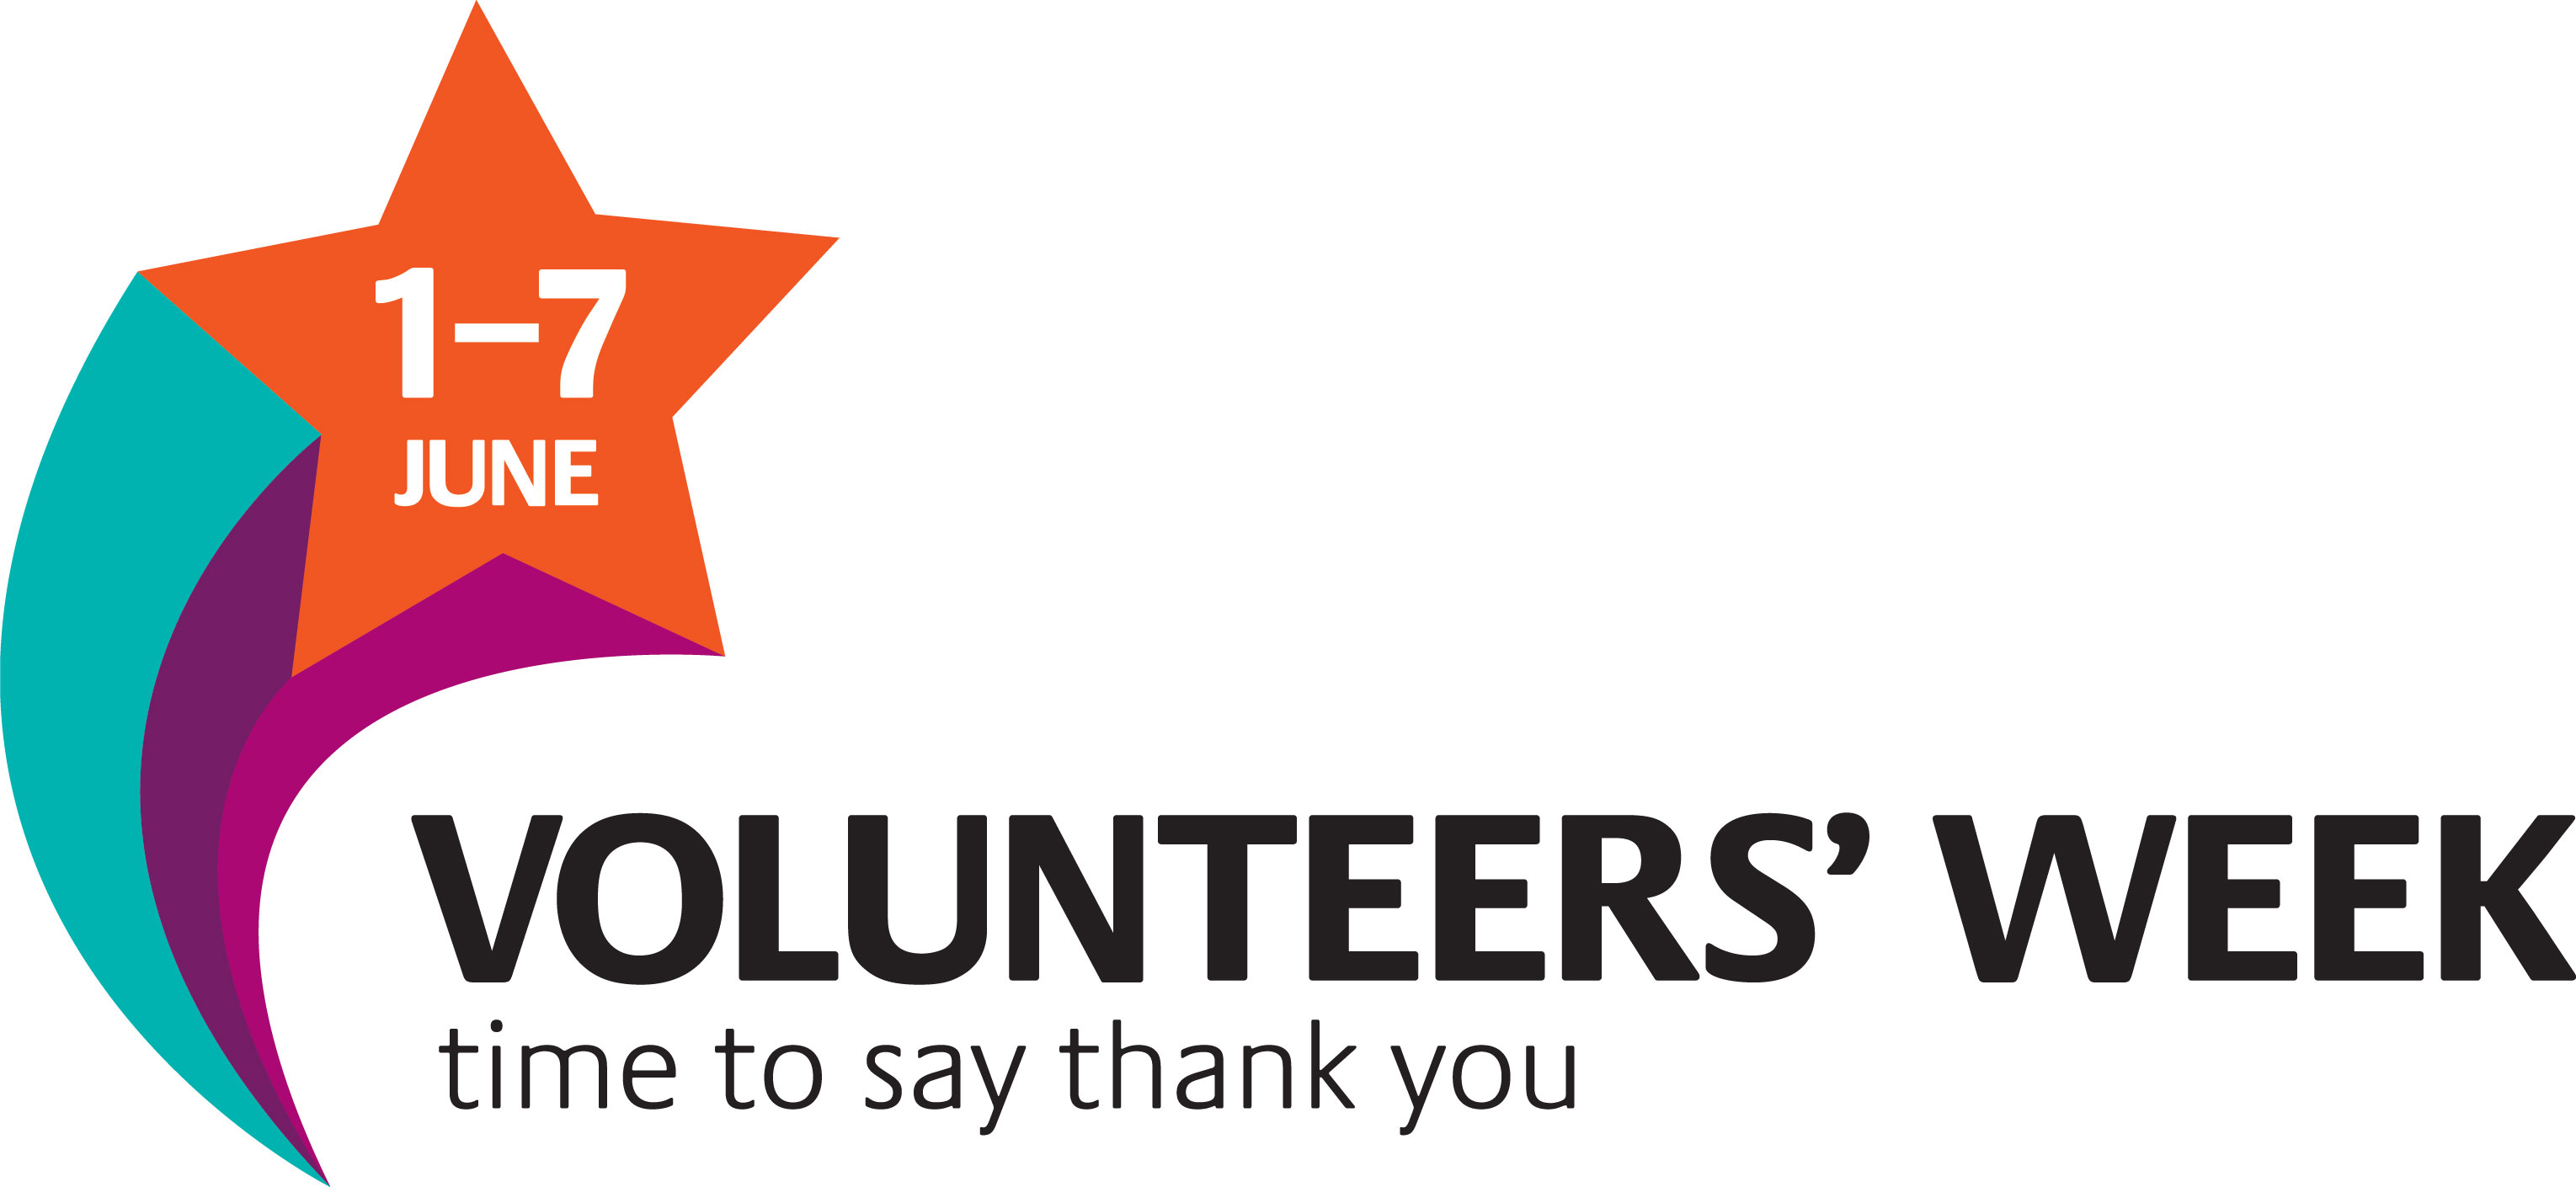 volunteers week celebrating your hard work successes the volunteers week web logo